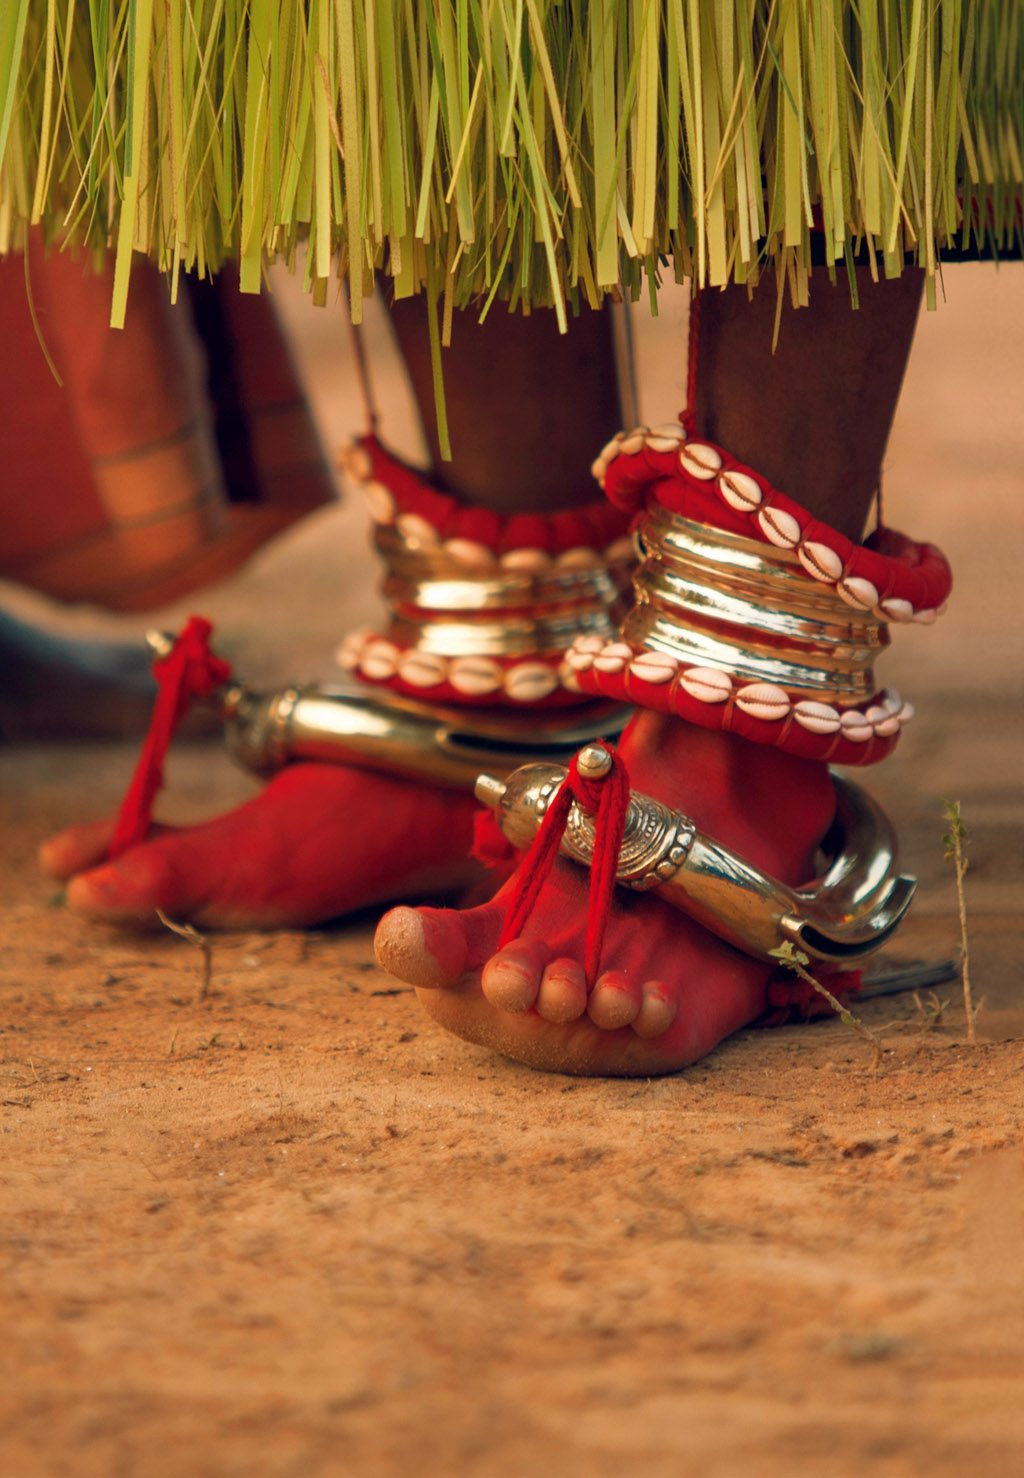 The different steps of a Theyyam are known as kalaasalams. They involve the systematic repetition of footwork. Photo: Scott Hailstone/E+/Getty Images